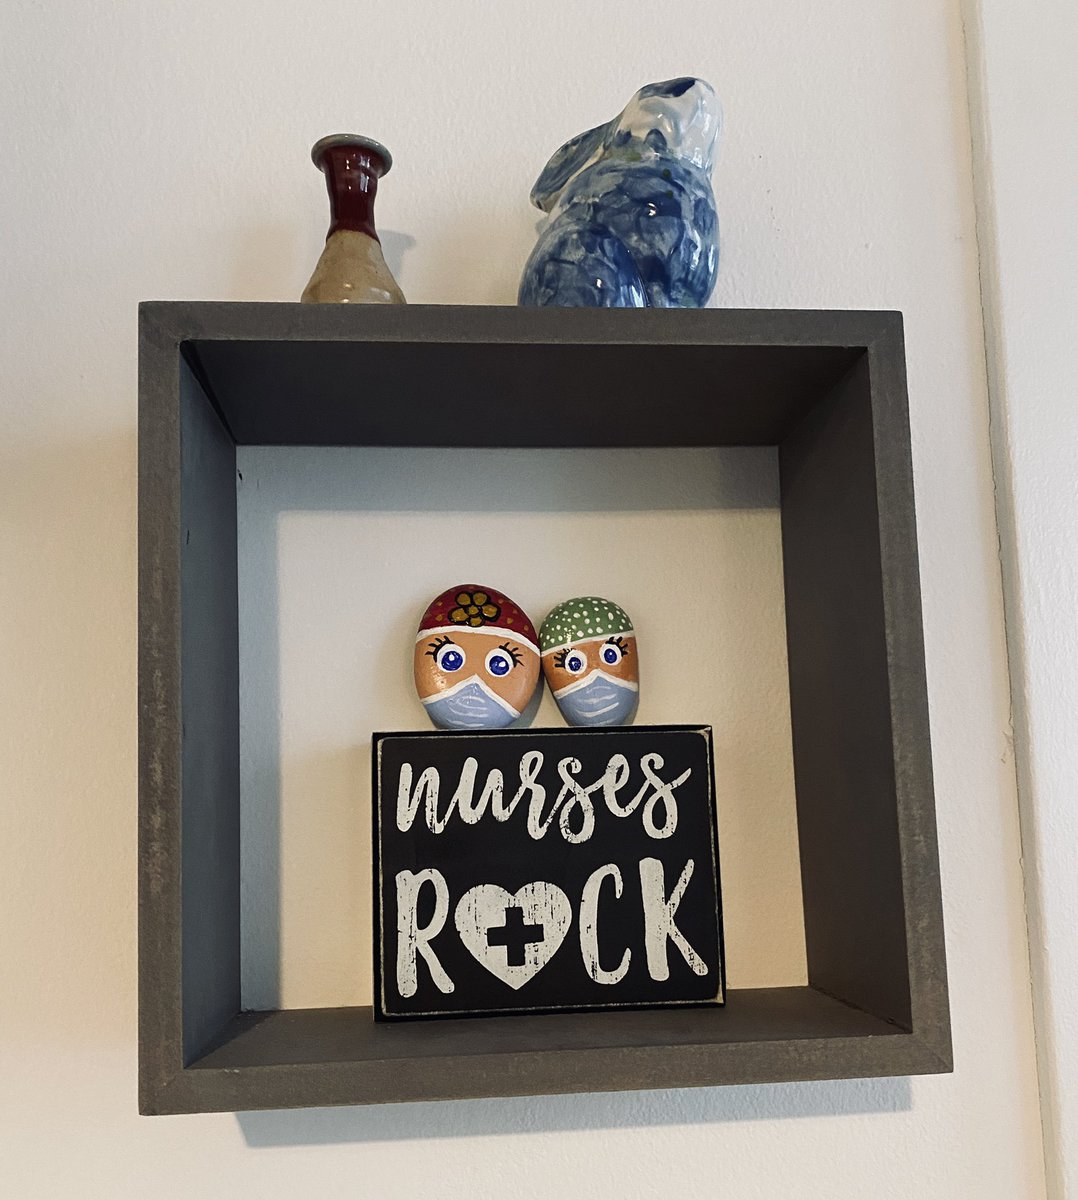 Nurse rocks - https://t.co/GaKHSZy3XS  #rocks #rockpainting #nurse #rn #lpn #gift #favors #nursesweek #painting #art #artsandcrafts #nursesrock #COVID19 #coronavirus #COVID #fromrox2riches https://t.co/XiA6CWNqcA